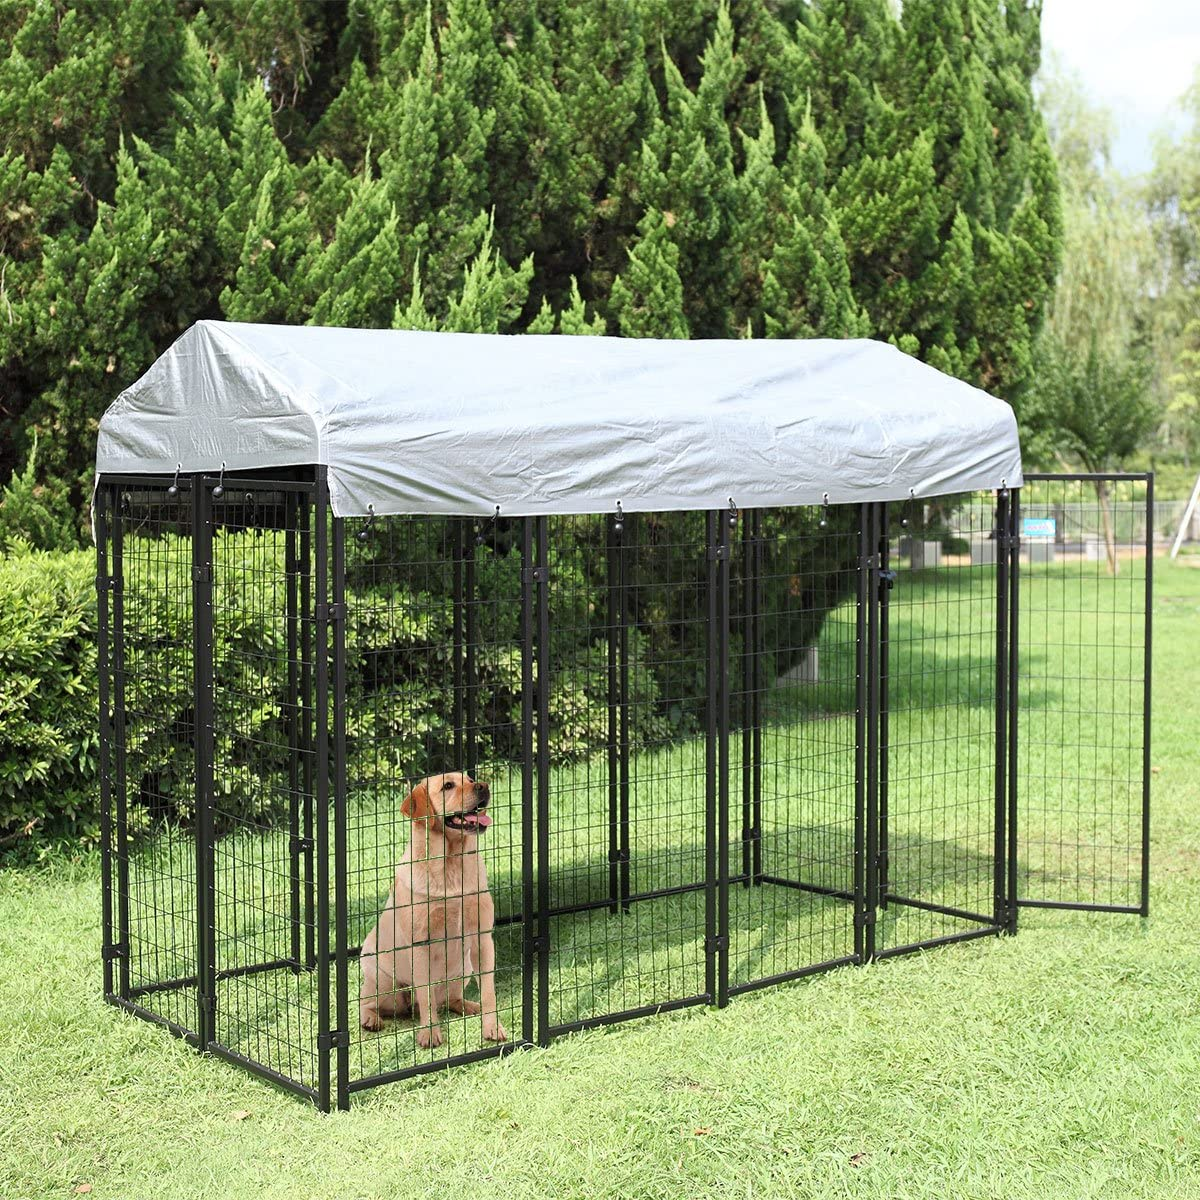 JAXPETY Large Dog Uptown Welded Wire Kennel Outdoor Pen Outside Exercise Crate Pet Wire Cage w Roof